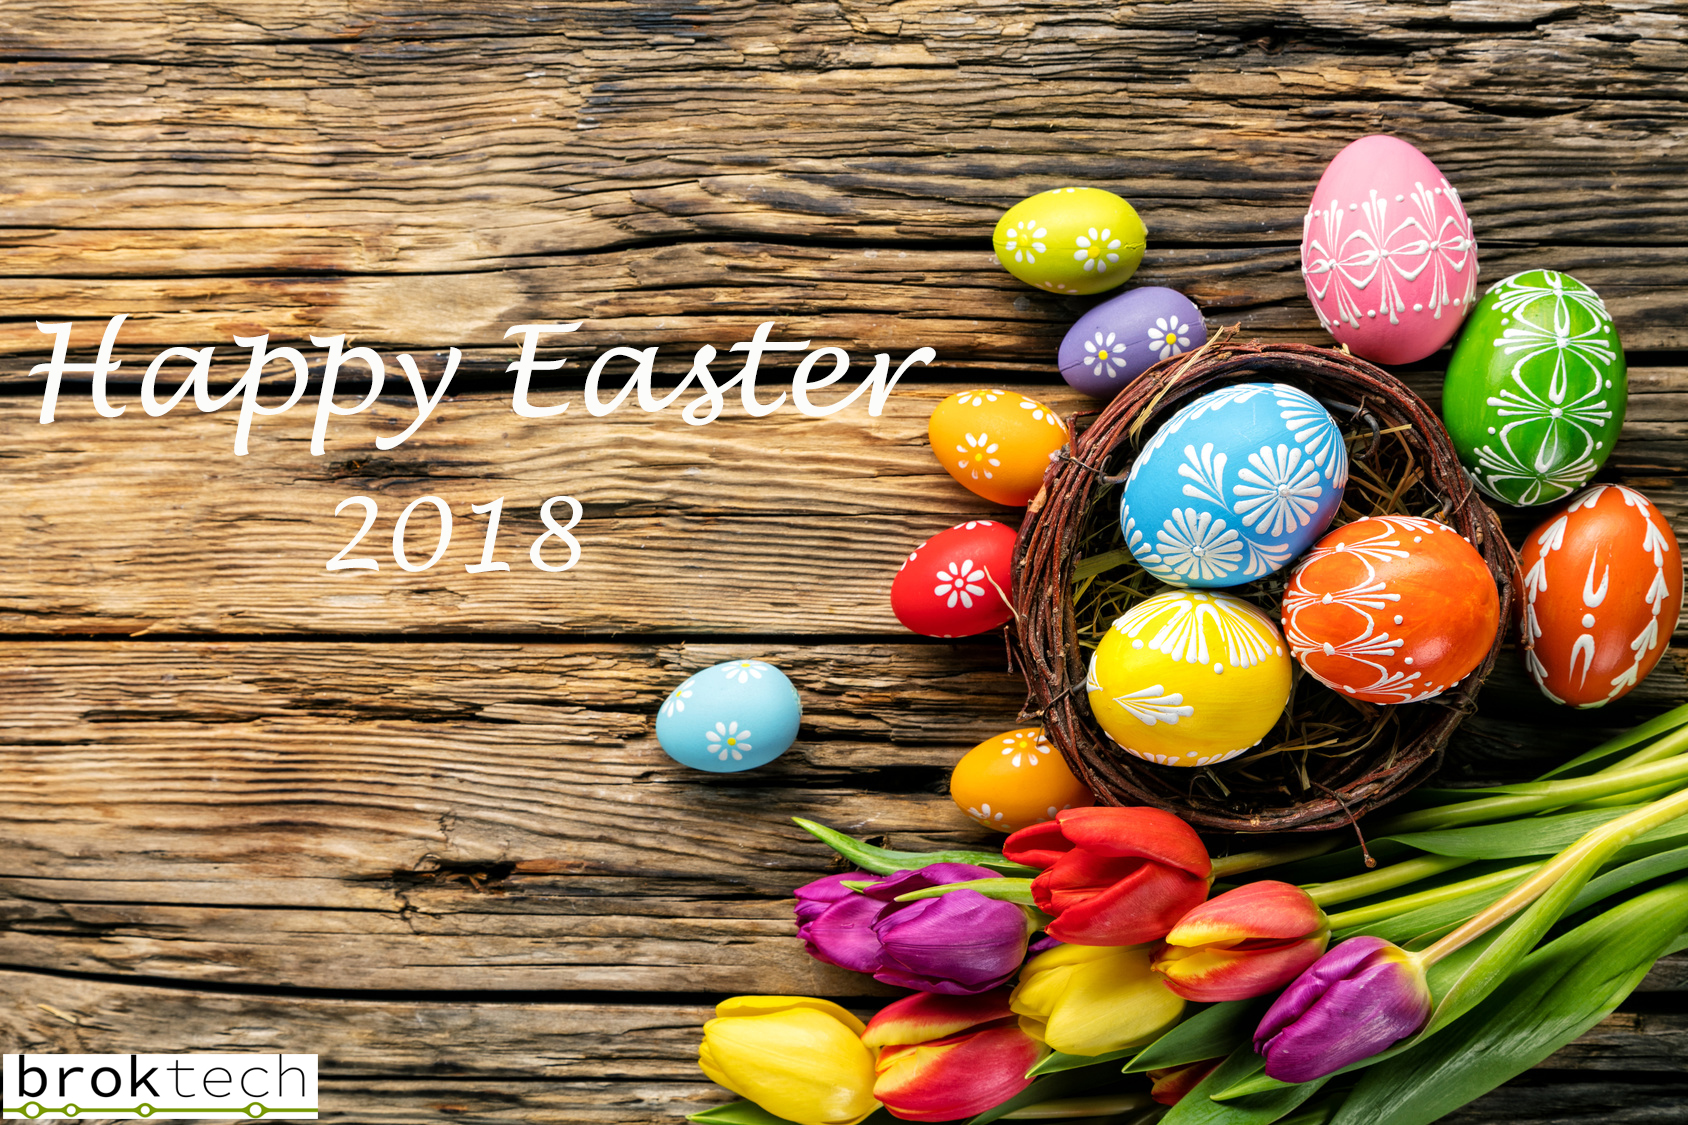 Easter Greeting 2018 Broktech